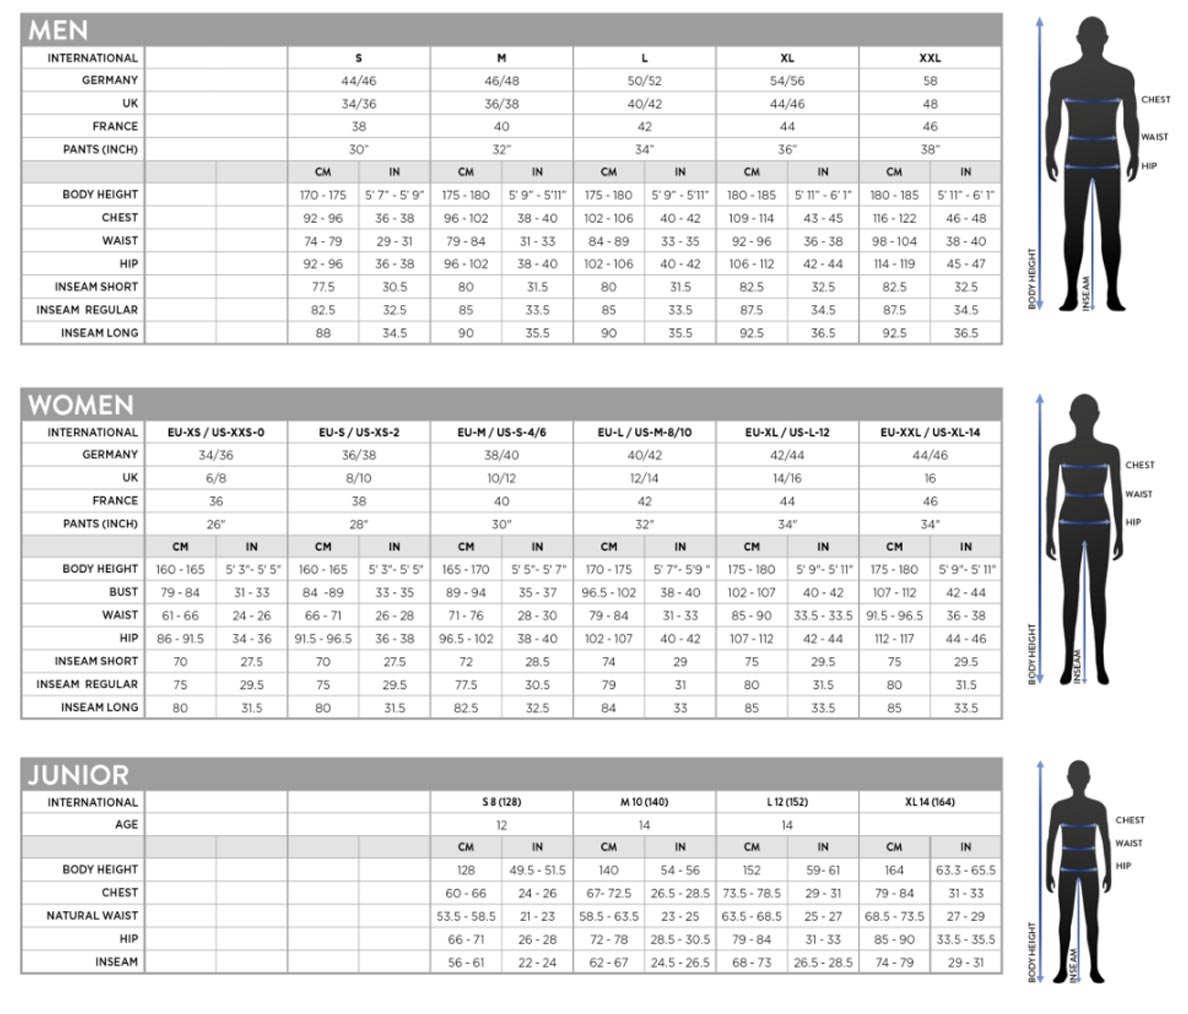 Scott's men's sizing